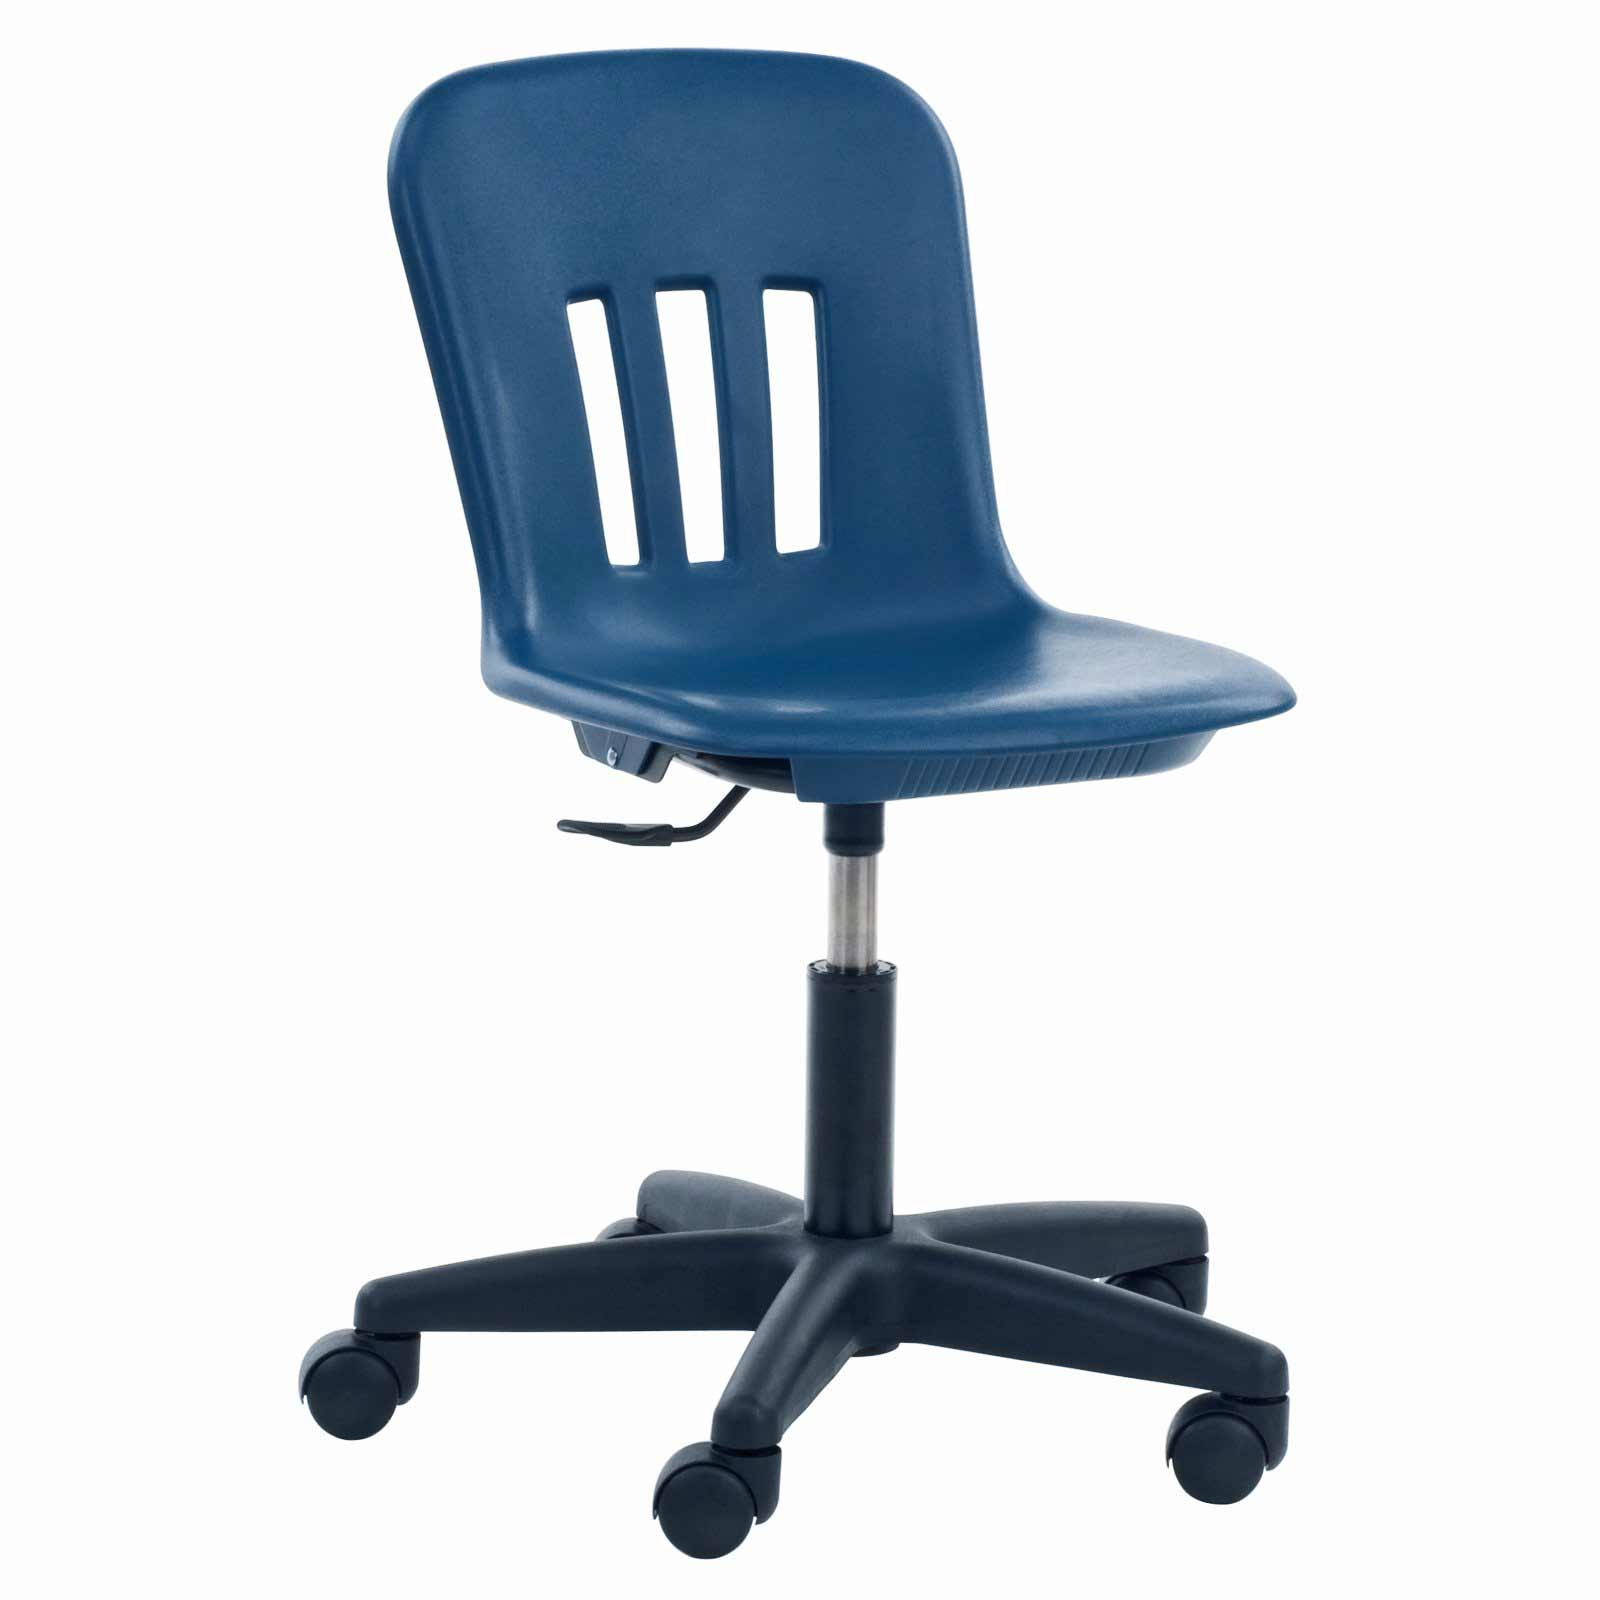 Virco adjustable task chair for children